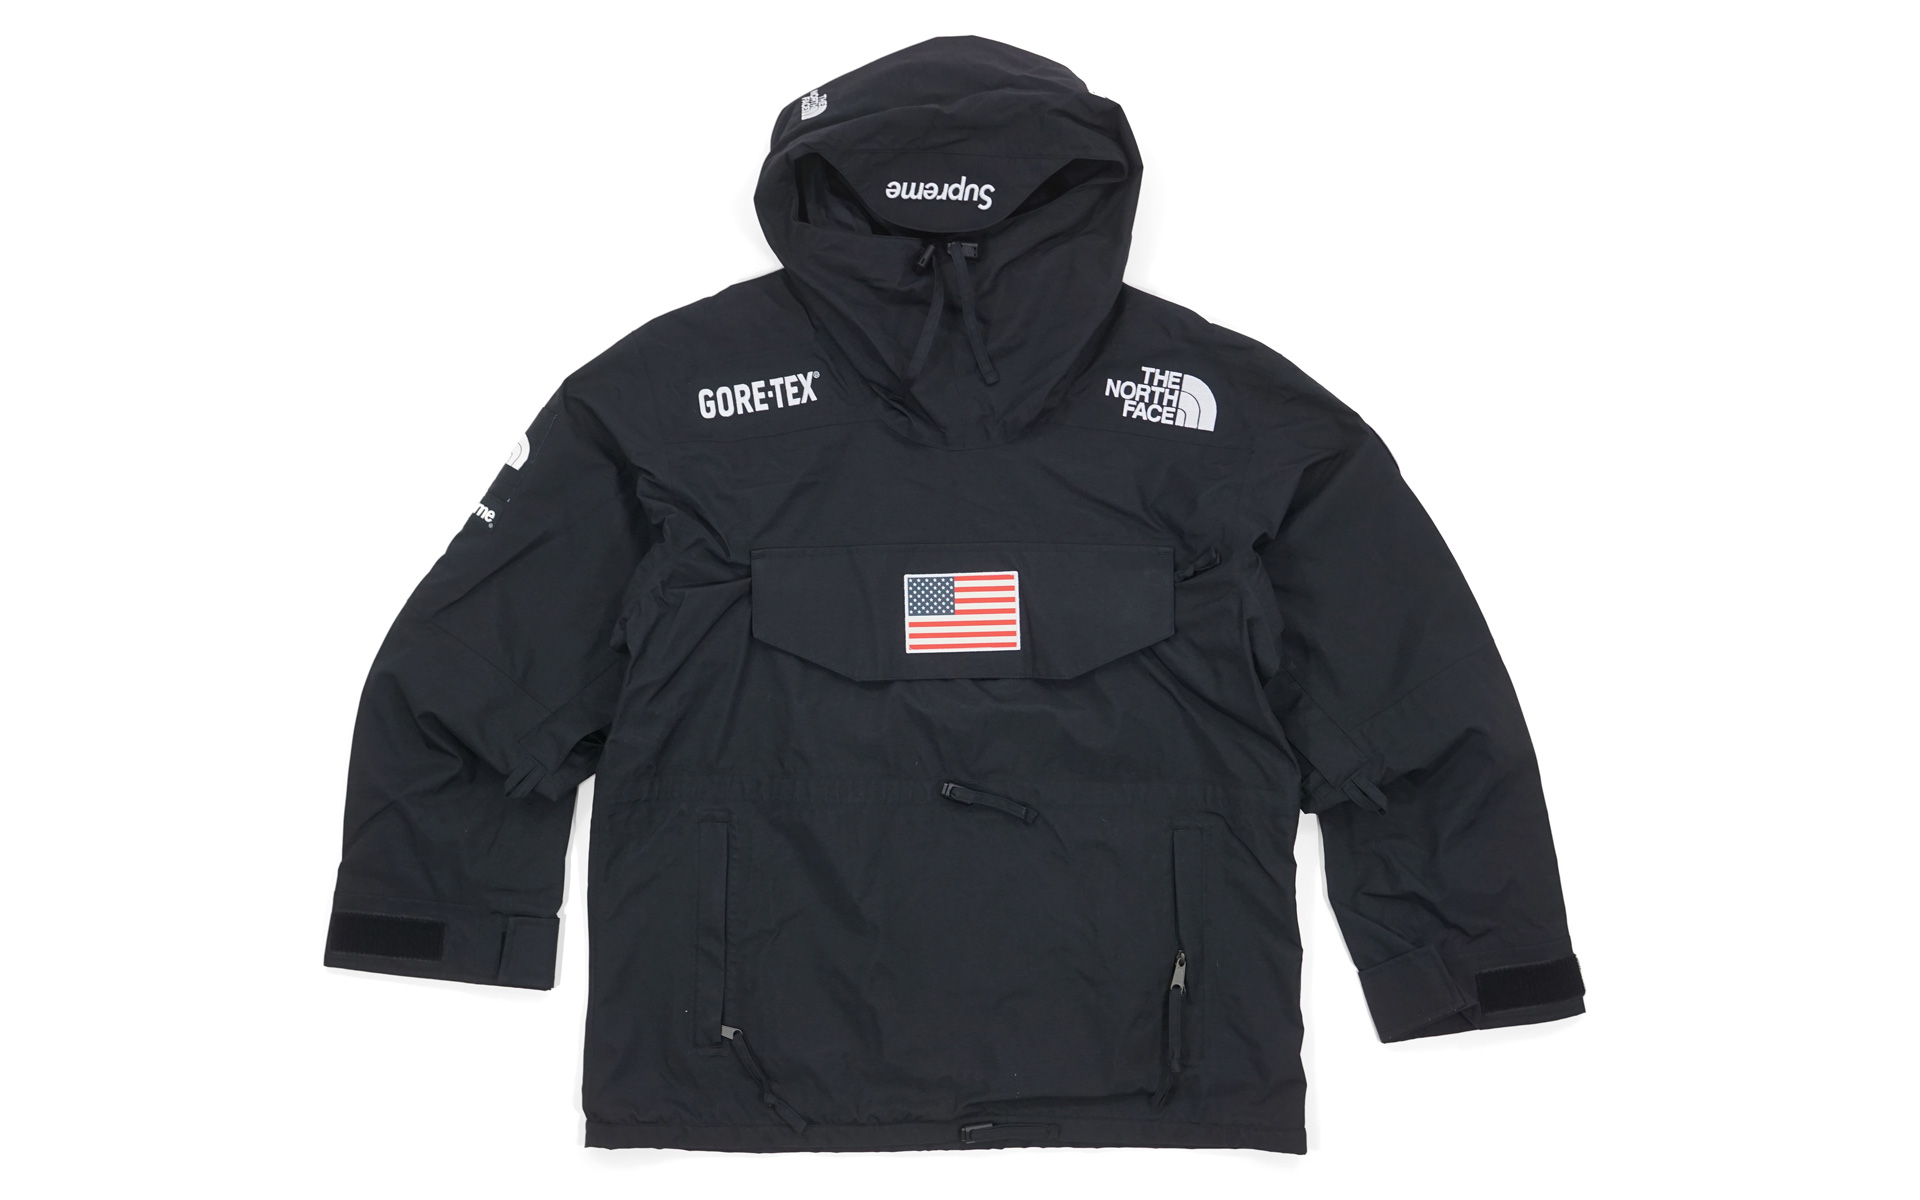 f8edbc0a8f ... wholesale supreme the north face trans antarctica expedition pullover  jacket black 4c130 50c0d